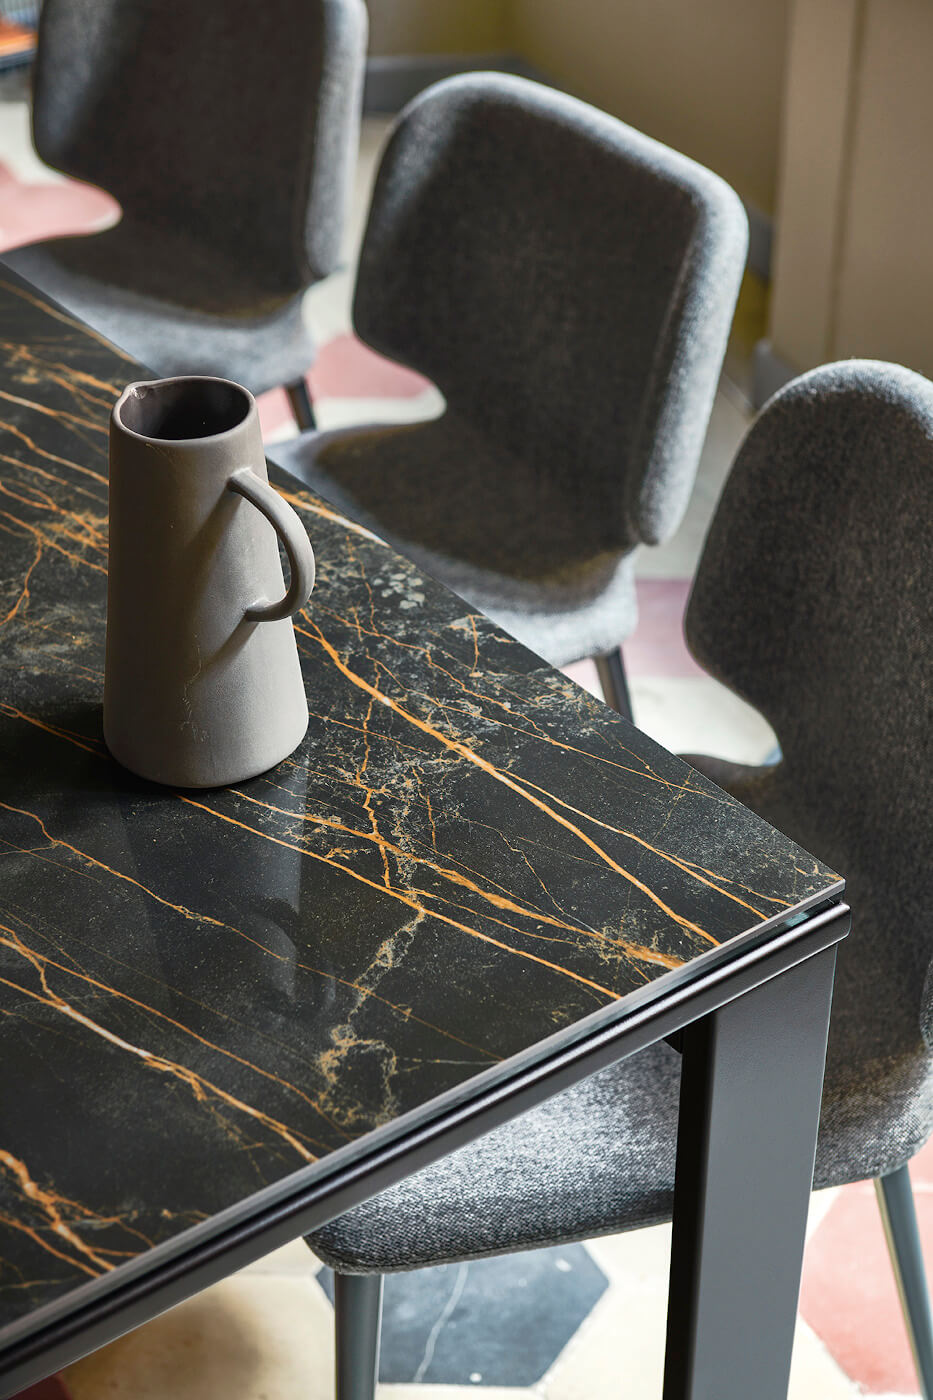 Detail of the noir desir marble effect crystalceramic top of the Marcopolo extendable table